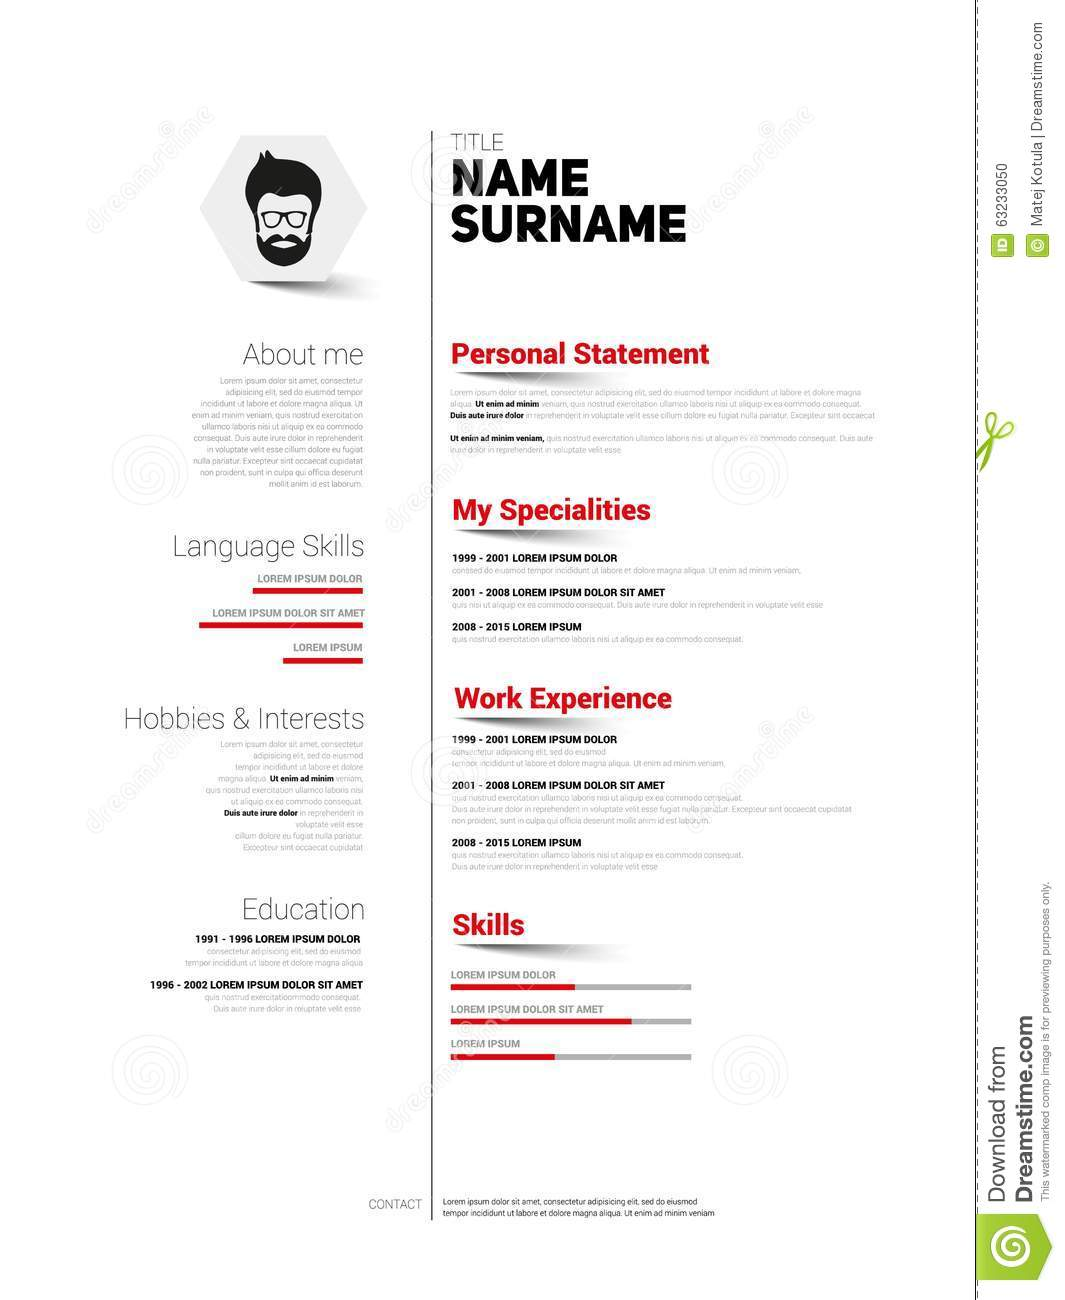 cv template keywords sample customer service resume cv template keywords curriculum vitae cv template the balance mini st cv resume template simple design